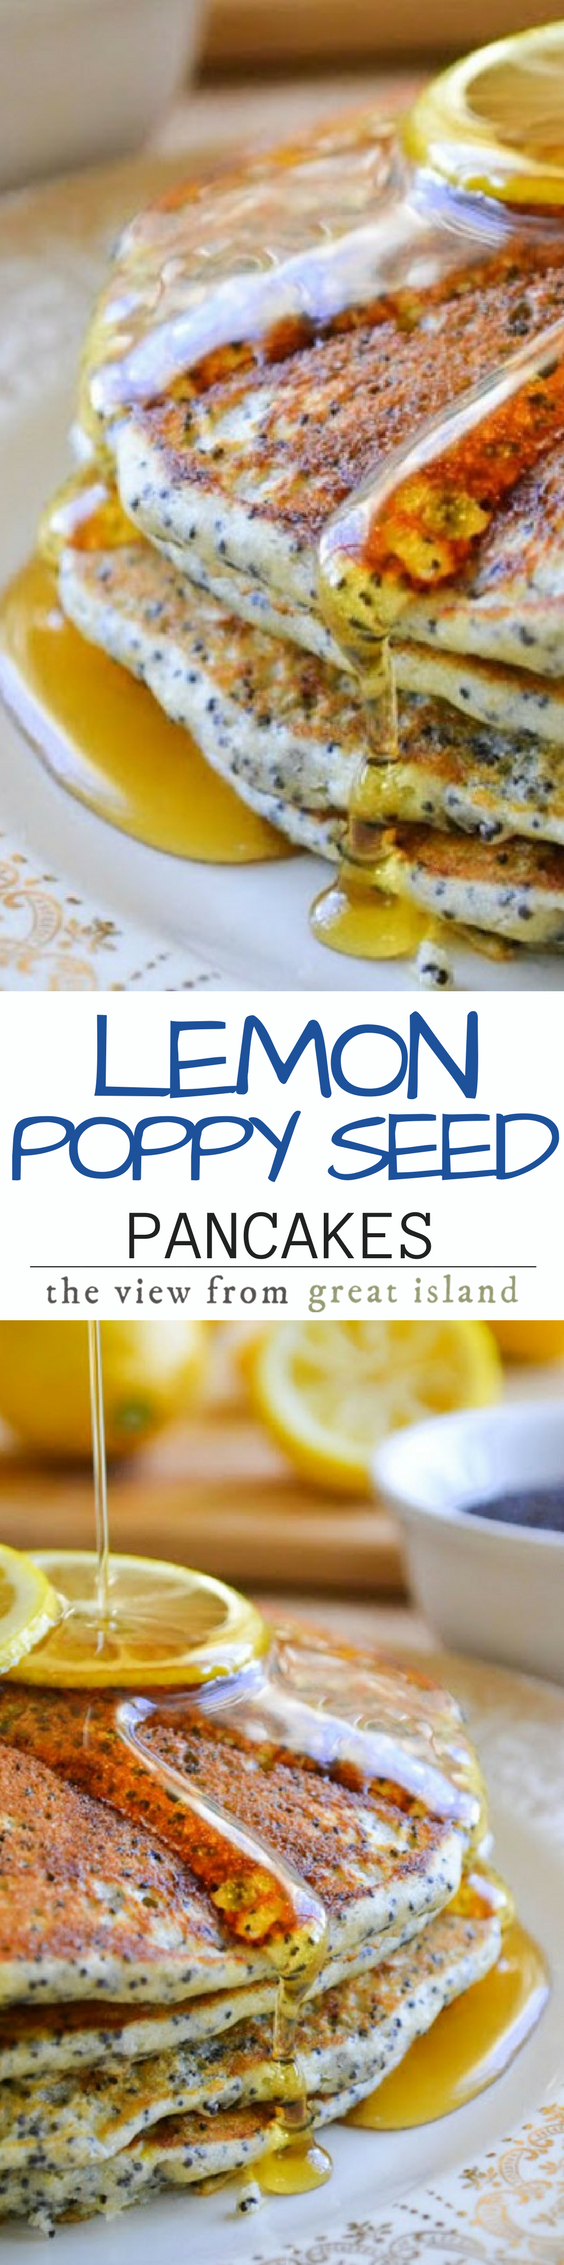 This recipe for Lemon Poppy Seed Pancakes has been tantalizing me all week. I adapted it from the Joy of Cooking. This unexpected combination is a refreshing change from regular pancakes and it's perfect for a special occasion or just any time you want to treat yourself! | Breakfast | Brunch | Citrus | Mother's Day | Spring |